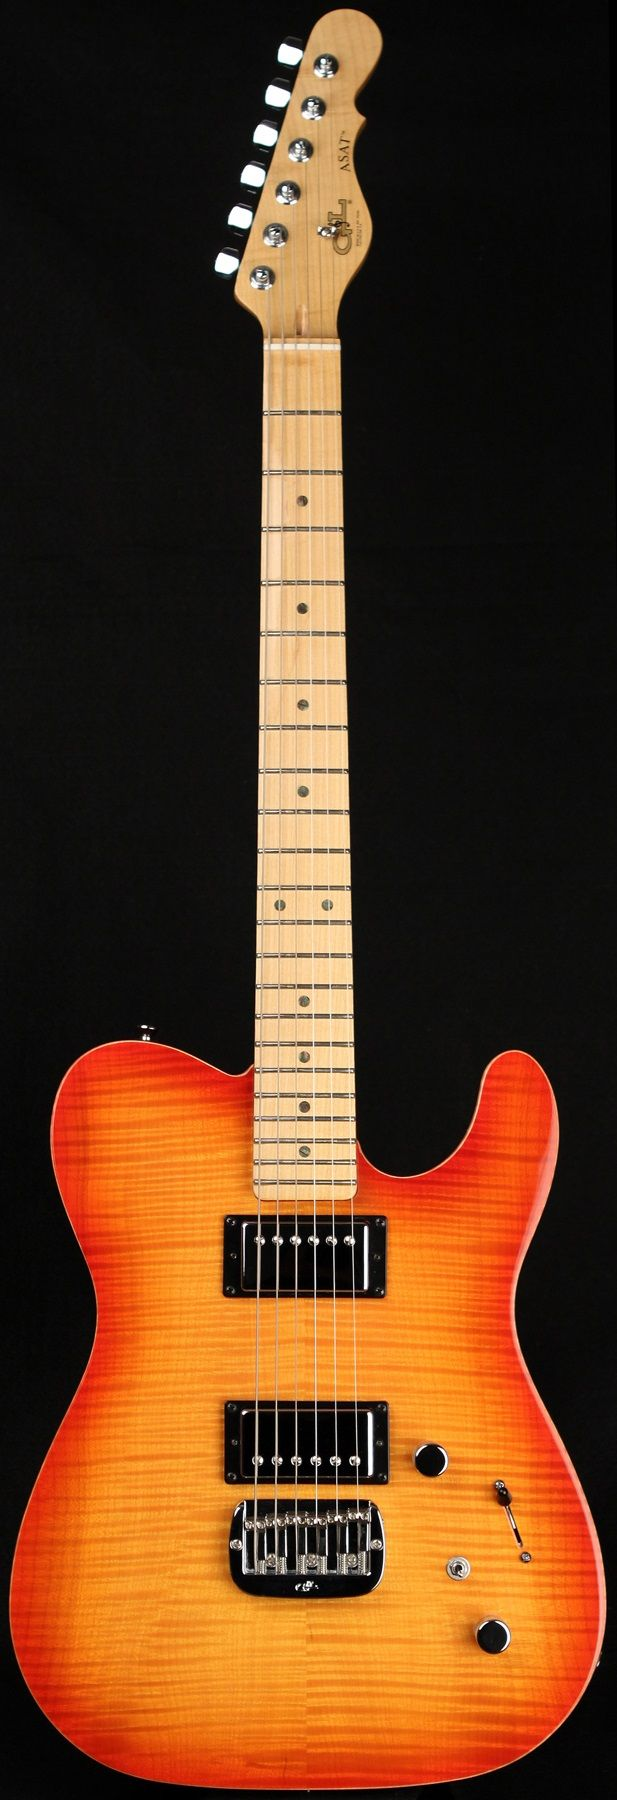 G&L Guitars ASAT® Deluxe, Old School G&L Tobacco Sunburst over Korina